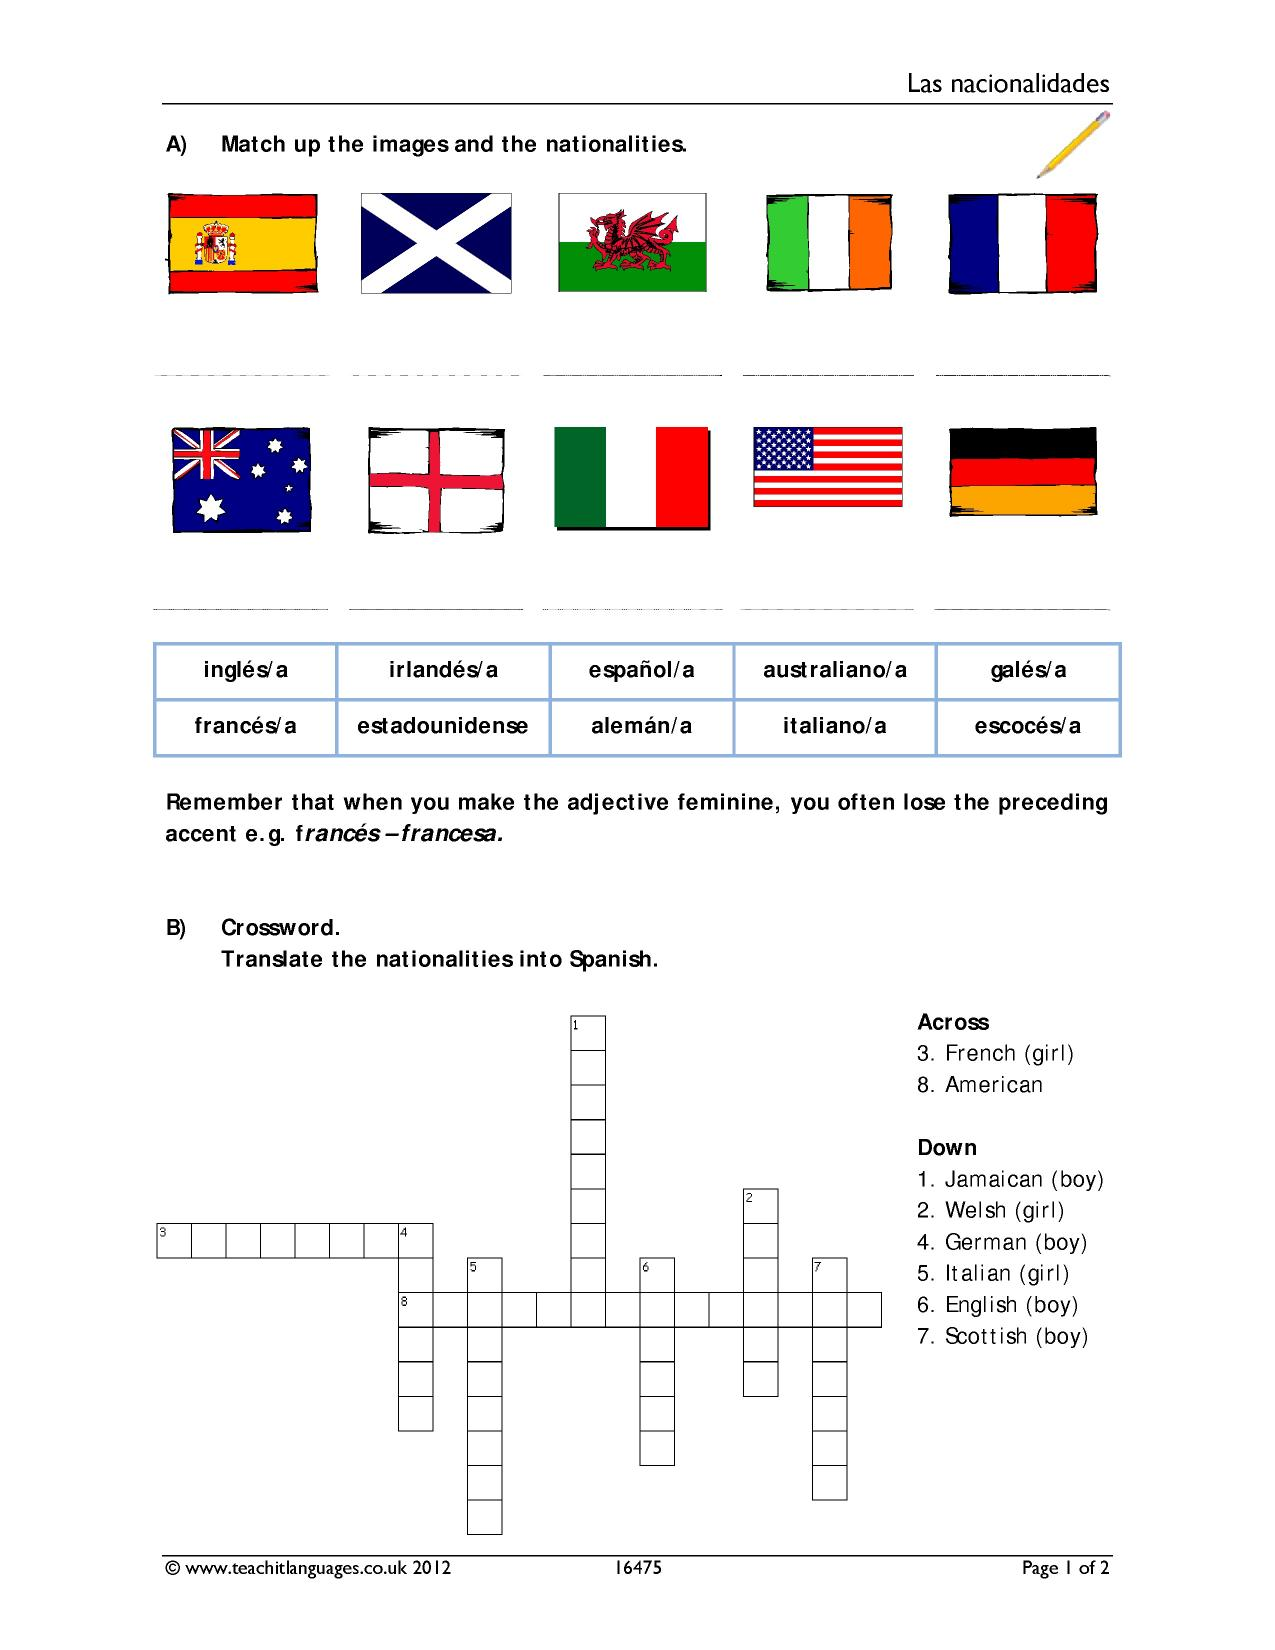 KS3 | KS4 | KS5 | Countries and nationalities | Teachit Languages